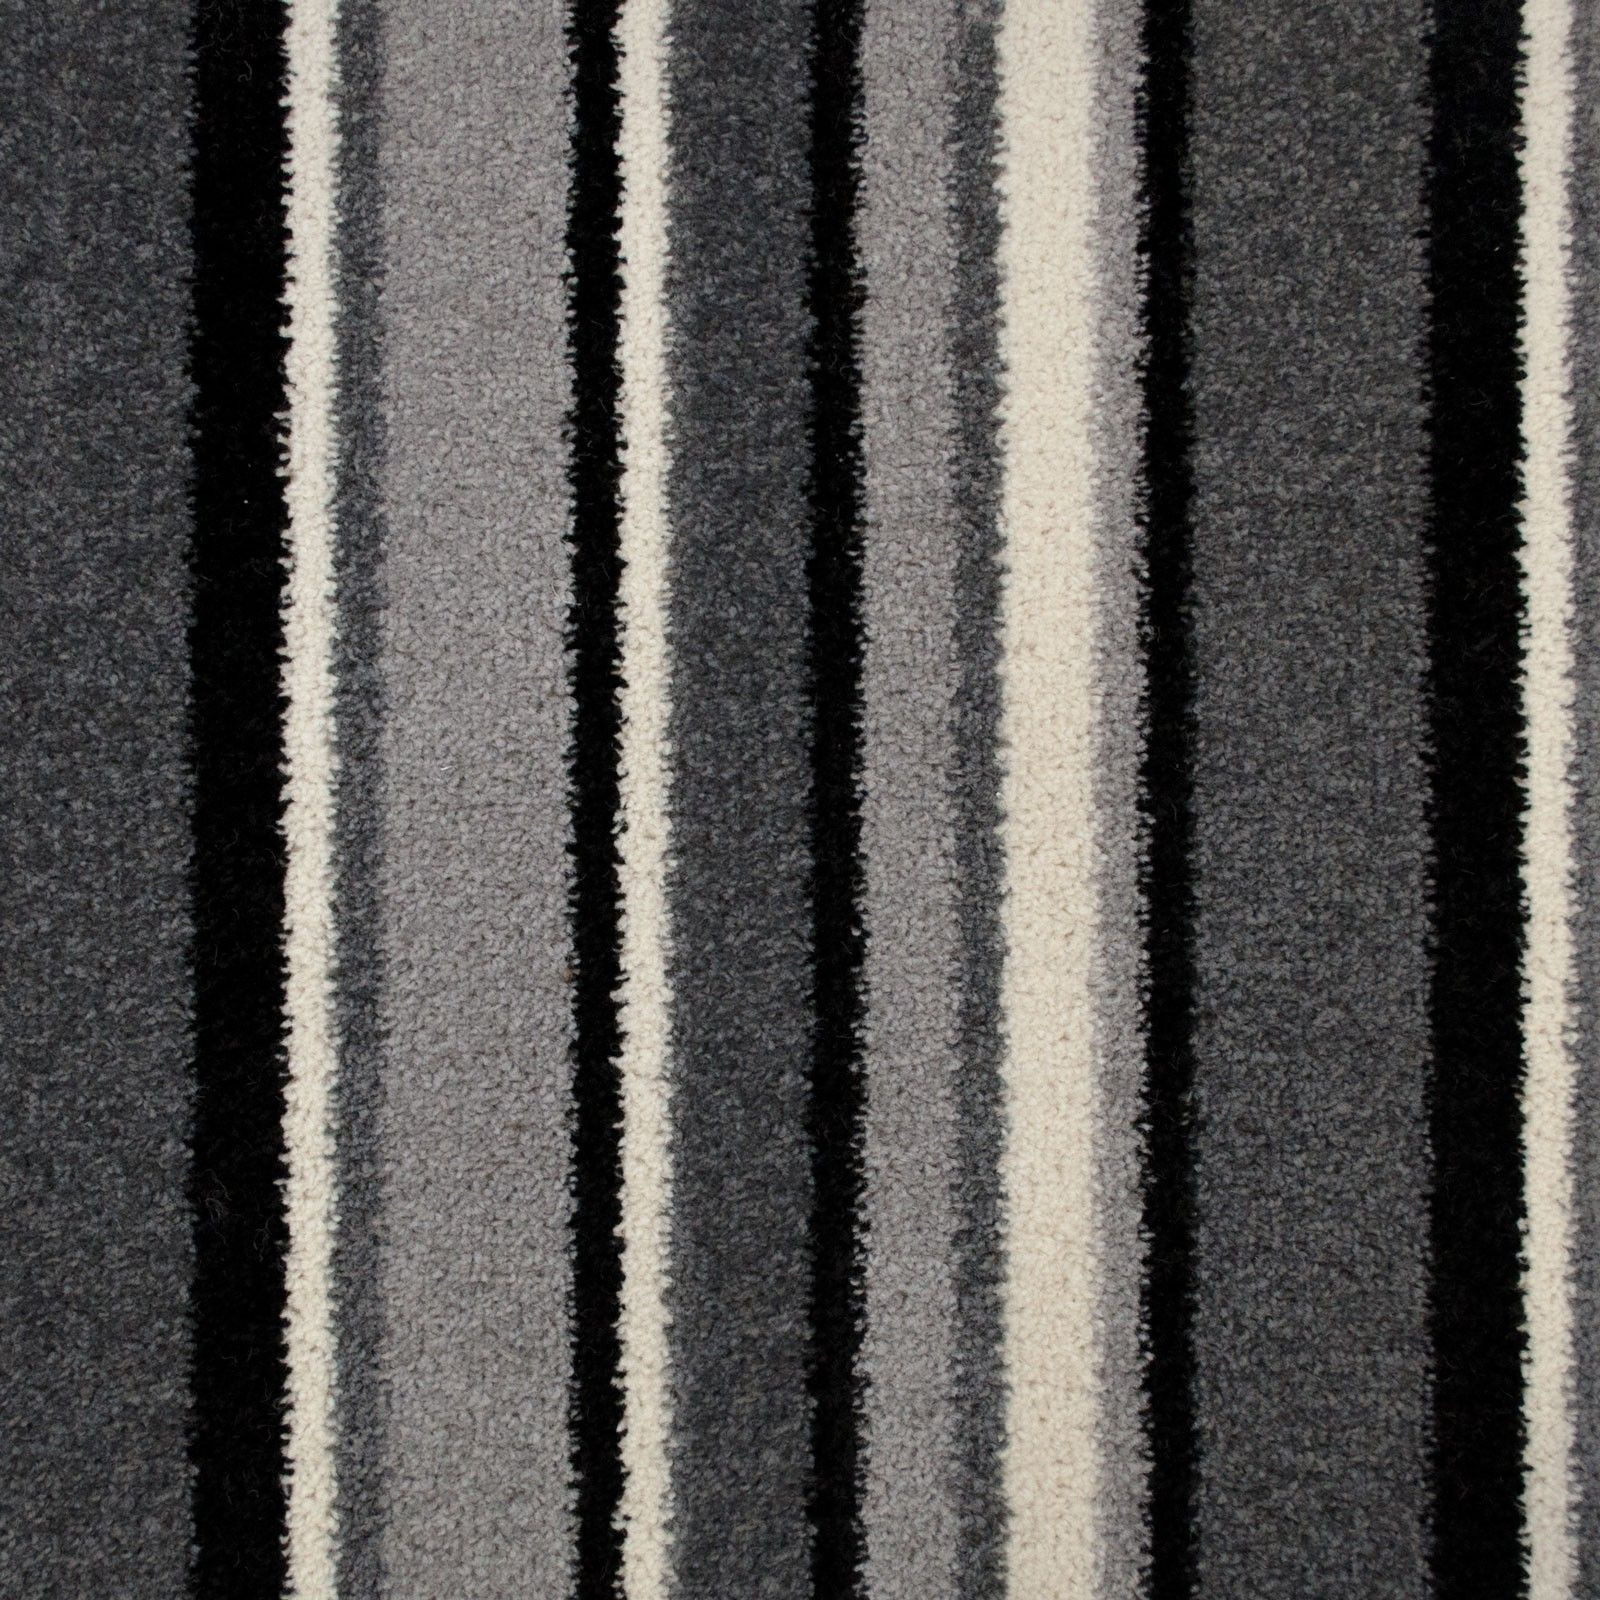 Grey 950 Pop Art Striped Carpet Mum And Dads Stairs